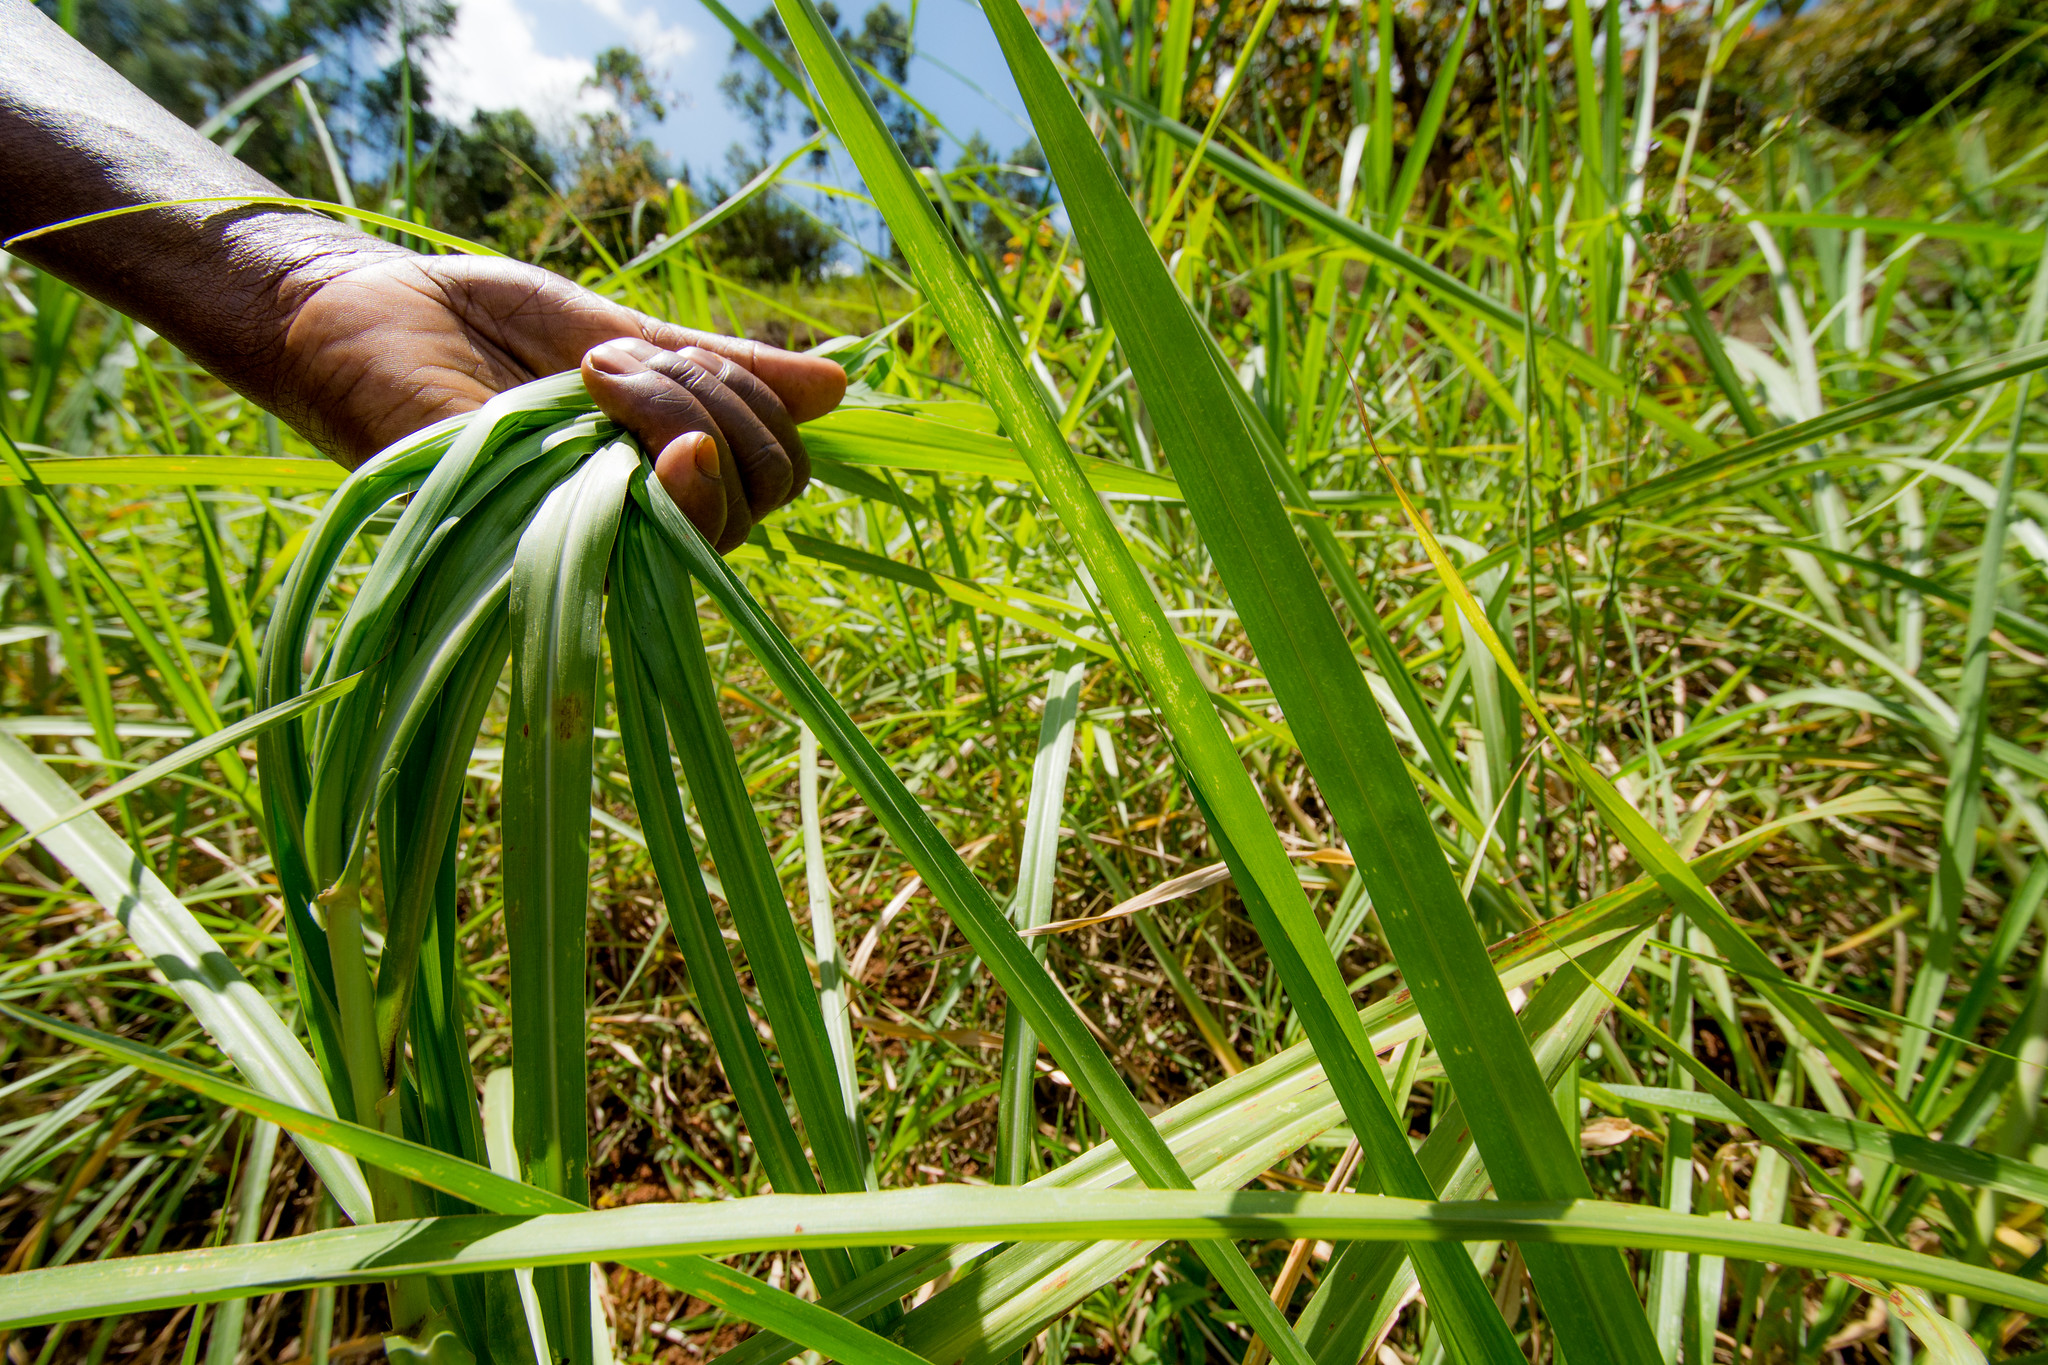 Napier grass is planted by farmers to prevent soil erosion in Kenya's Tana River Basin. (Photo: Georgina Smith/CIAT)